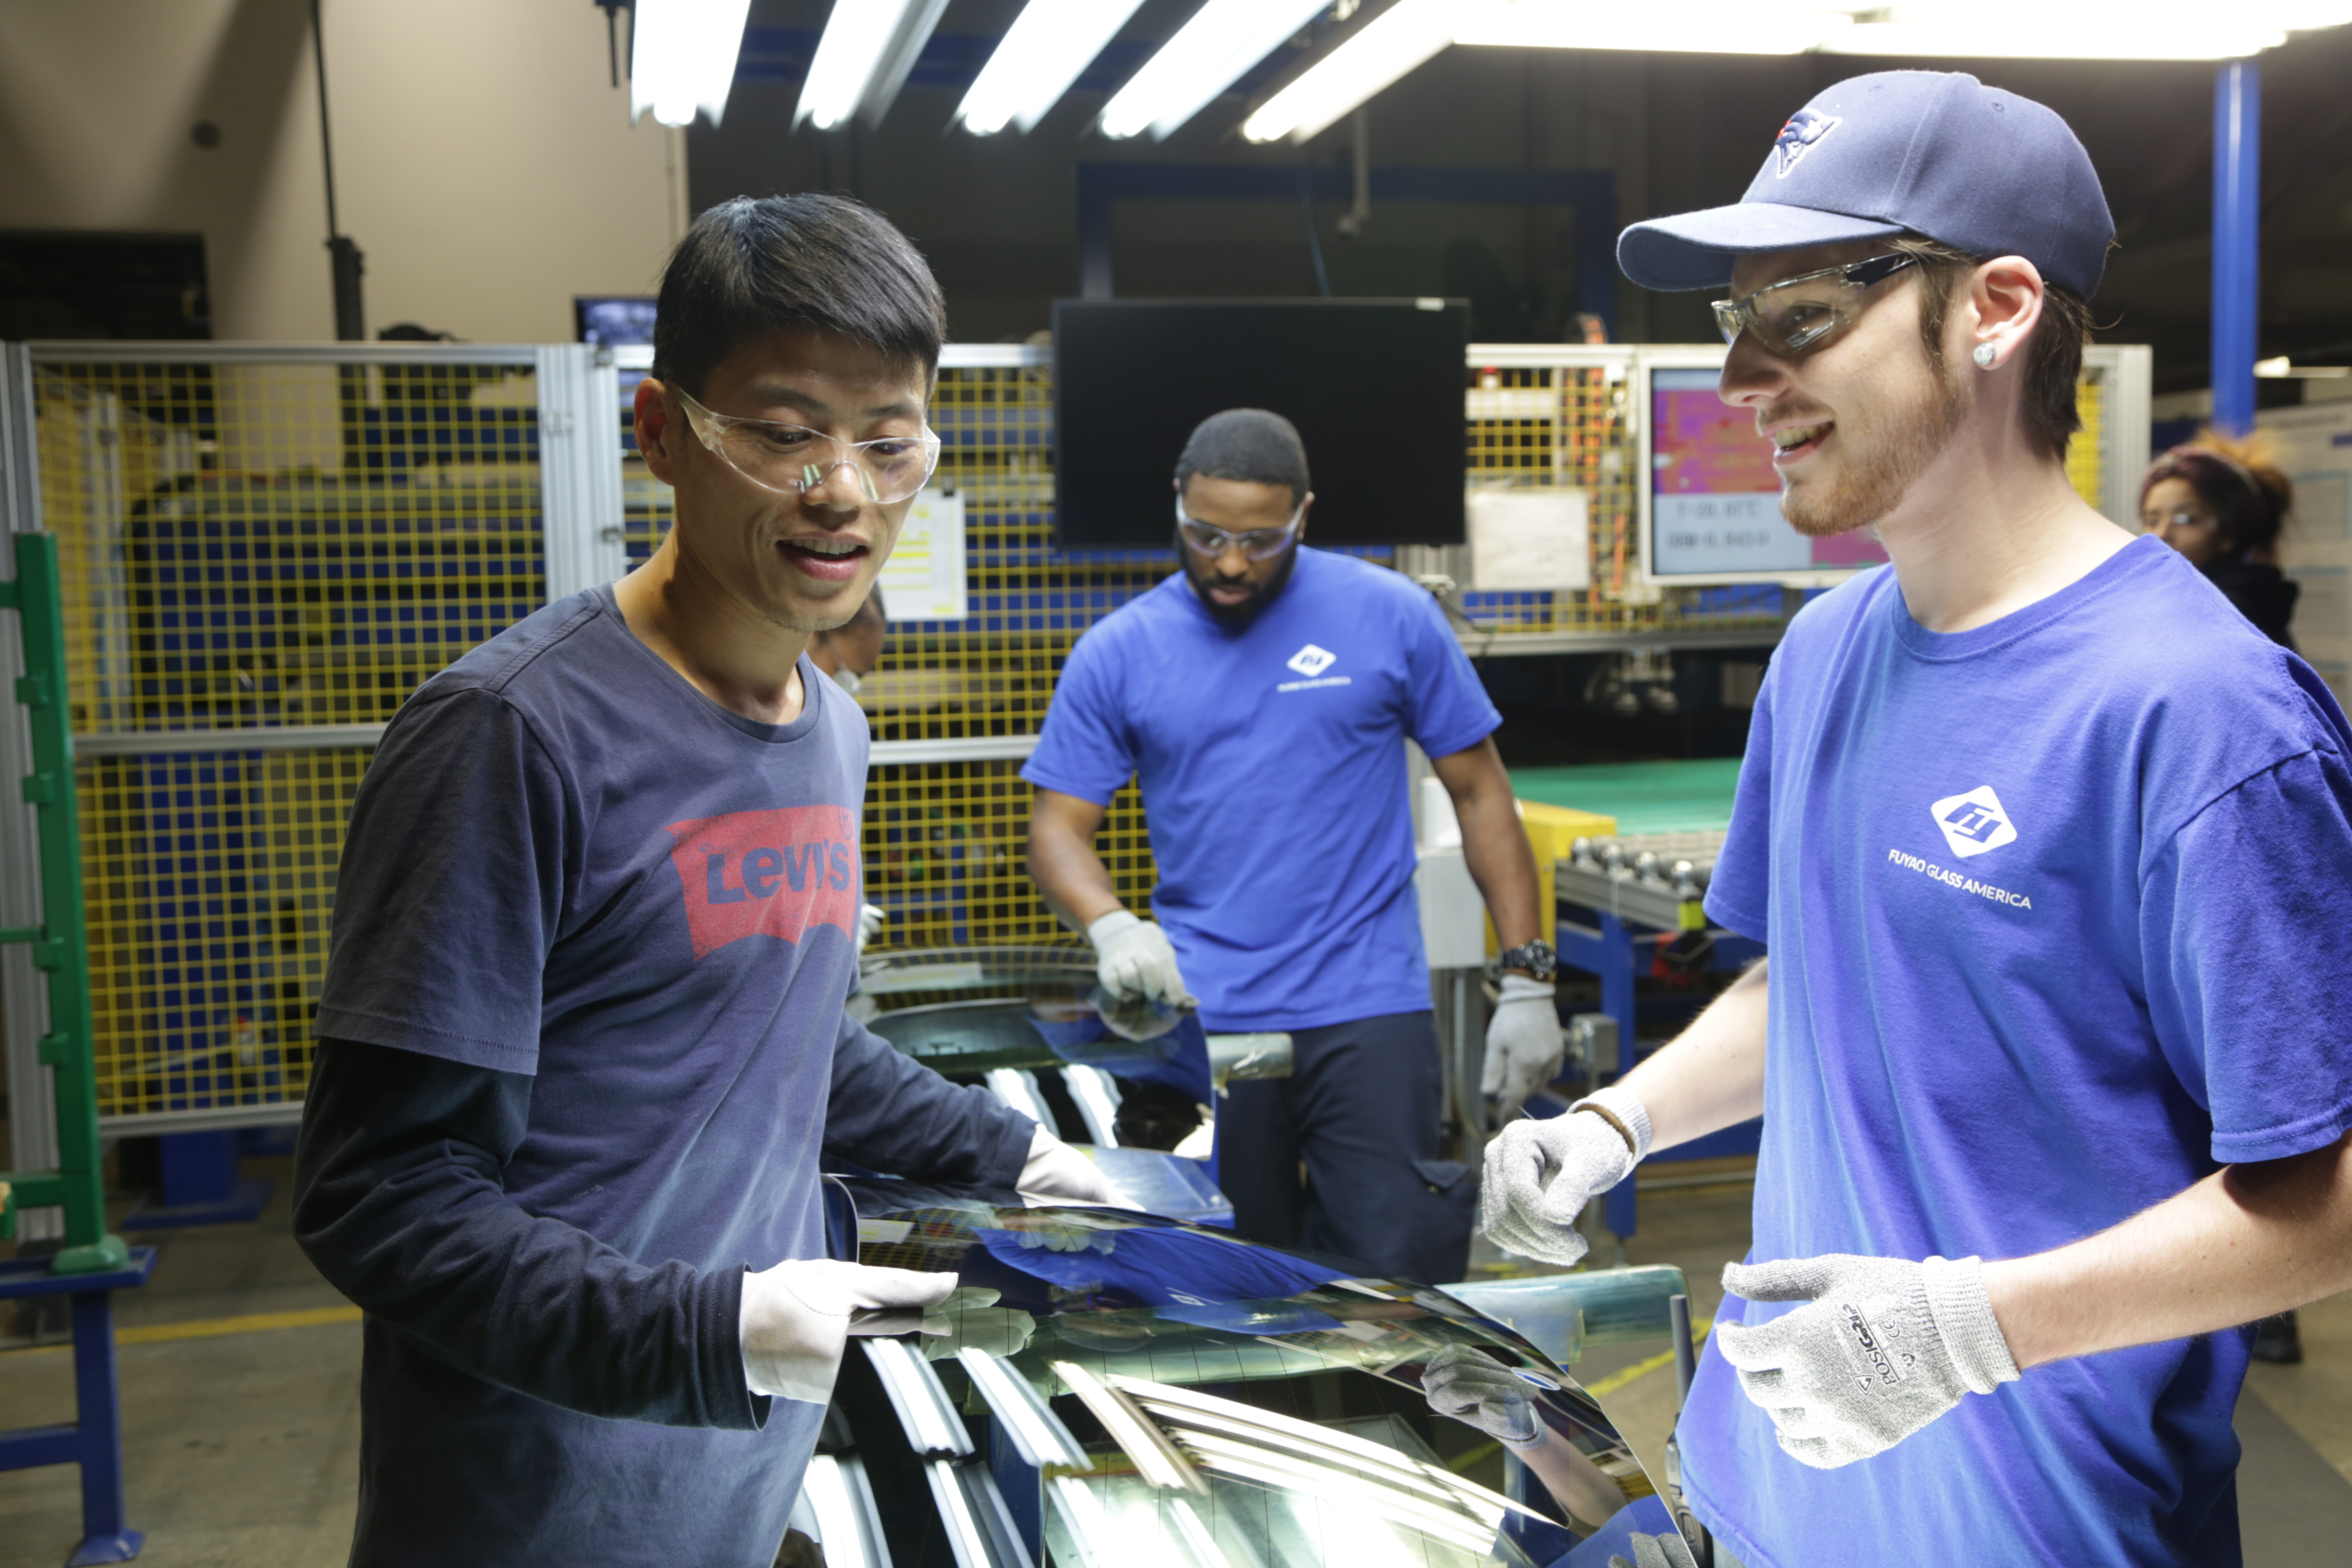 , The Obamas Backed This Oscar-Nominated Documentary. Republican Blue-Collar Workers Still Love It., Saubio Making Wealth